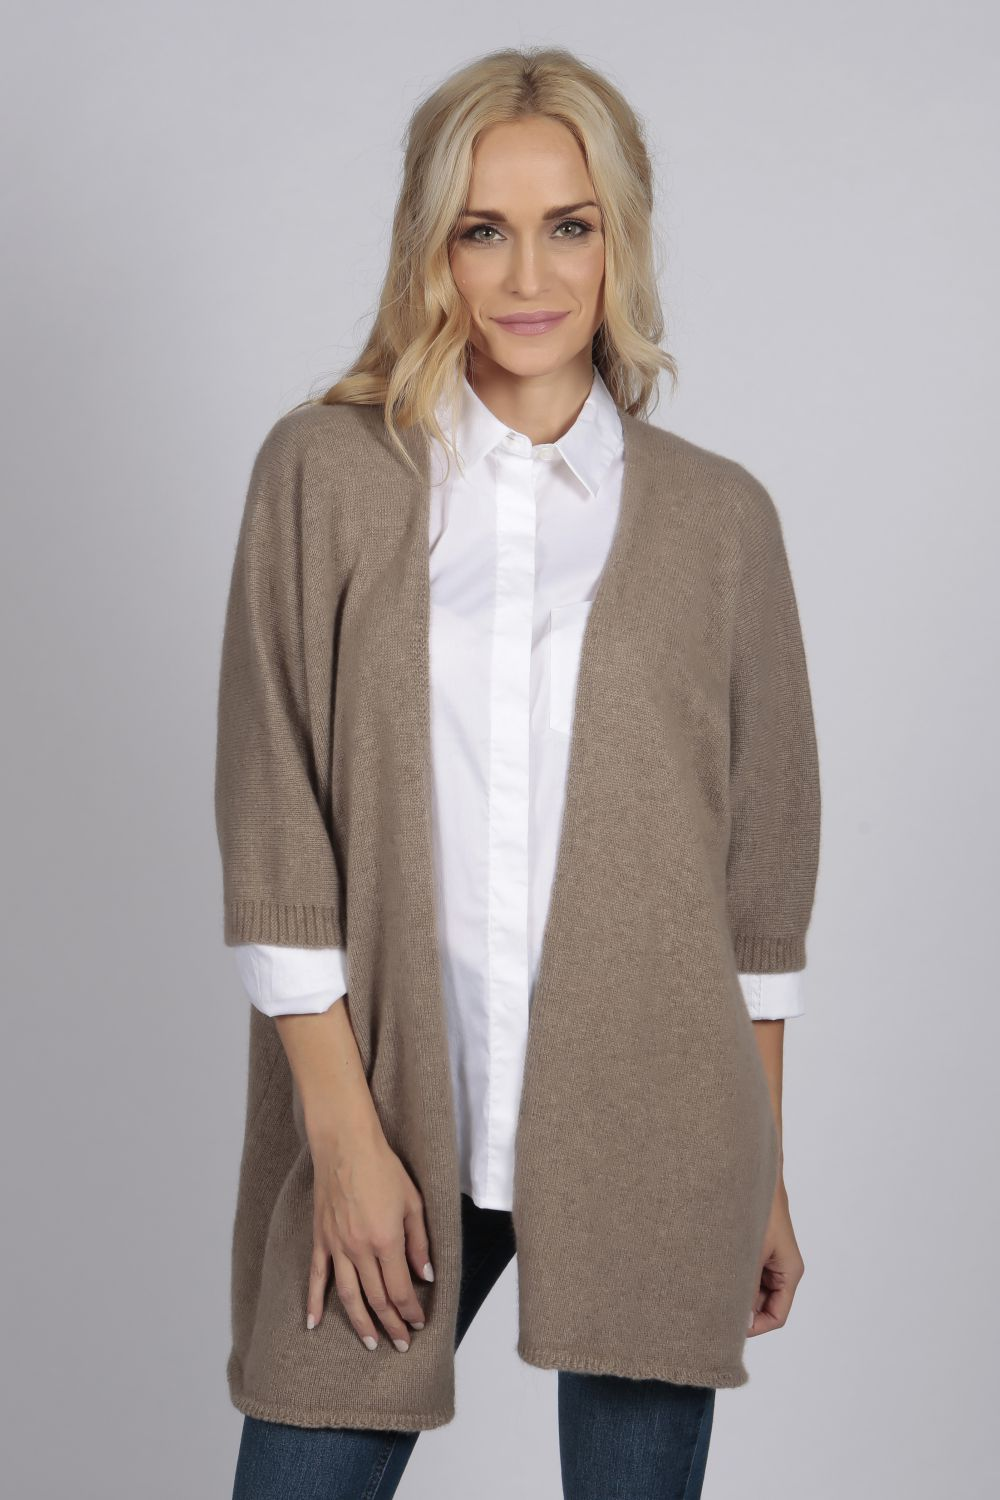 Camel brown beige pure cashmere duster cardigan | Italy in ...